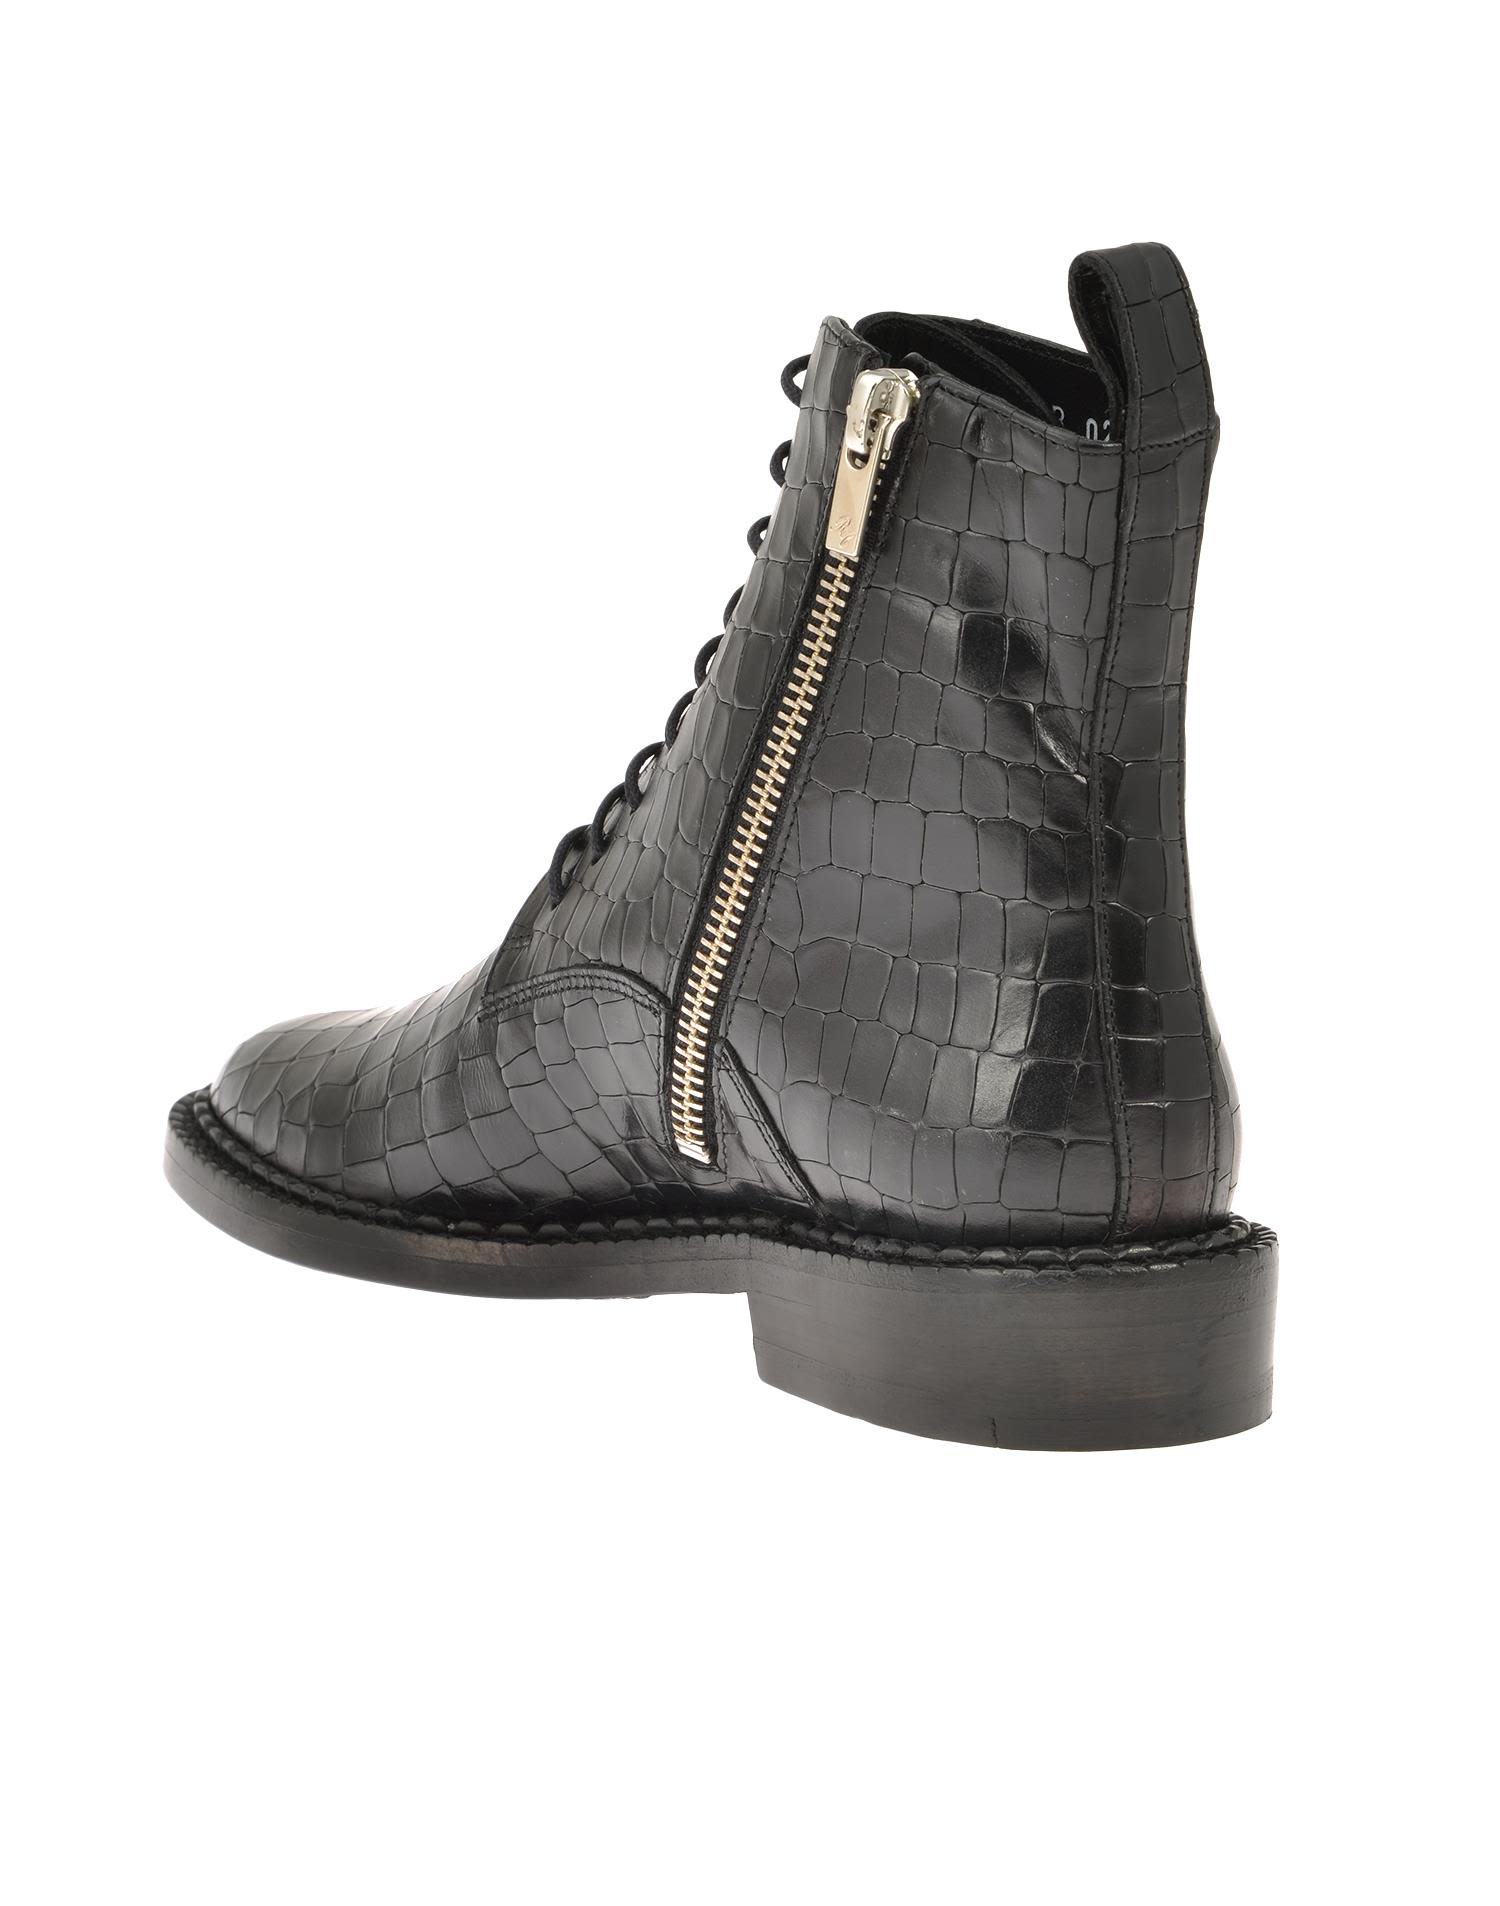 robert clergerie robert clergerie leather ankle boot